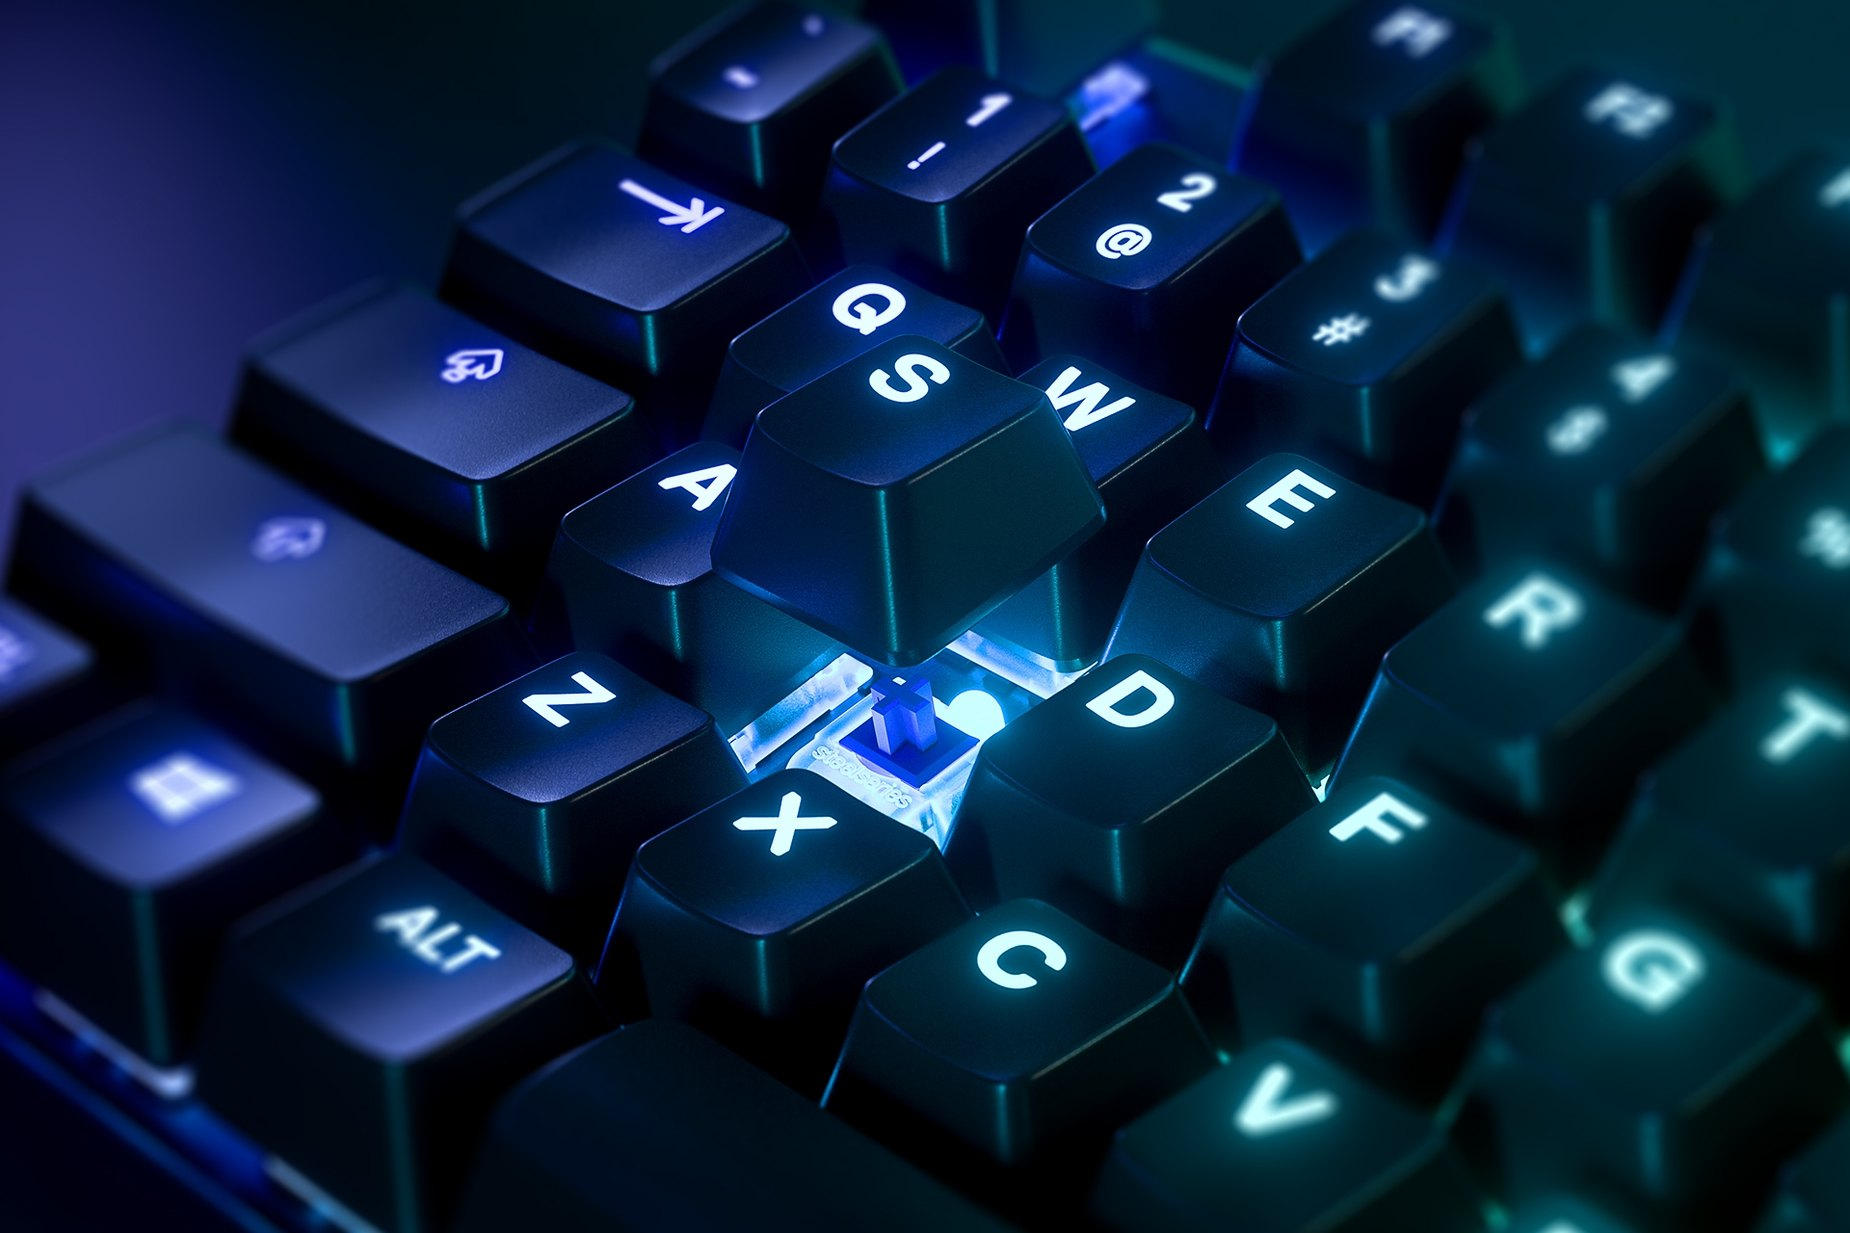 Zoomed in view of a single key on the US English - Apex 7 TKL (Blue Switch) gaming keyboard, the key is raised up to show the SteelSeries QX2 Mechanical RGB Switch underneath